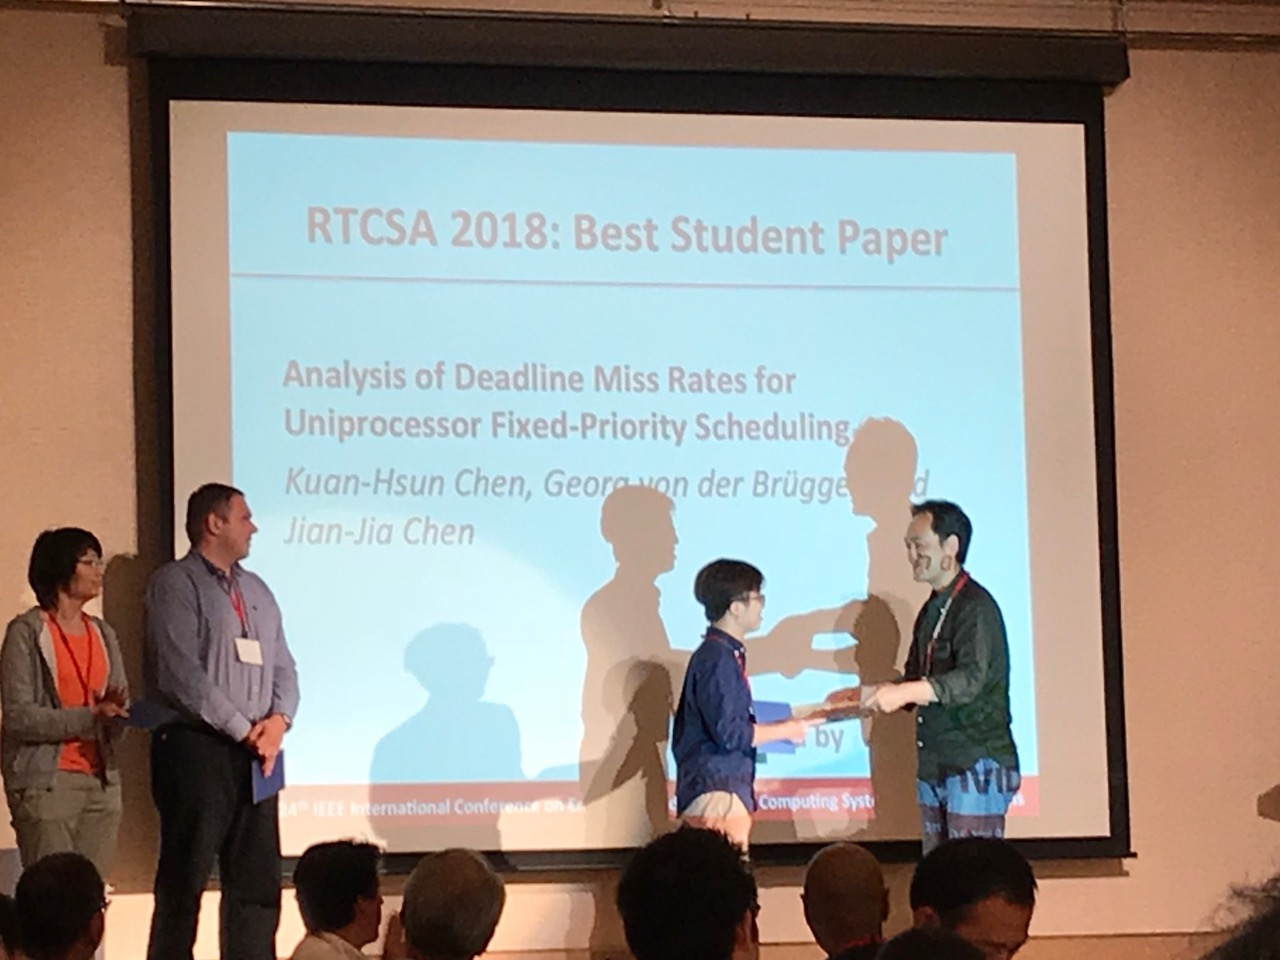 """... for Uniprocessor Fixed-Priority Scheduling"""" by Kuan-Hsun Chen, Georg  von der Brüggen and Jian-Jia Chen was awarded the RTCSA Best Student Paper  Award."""